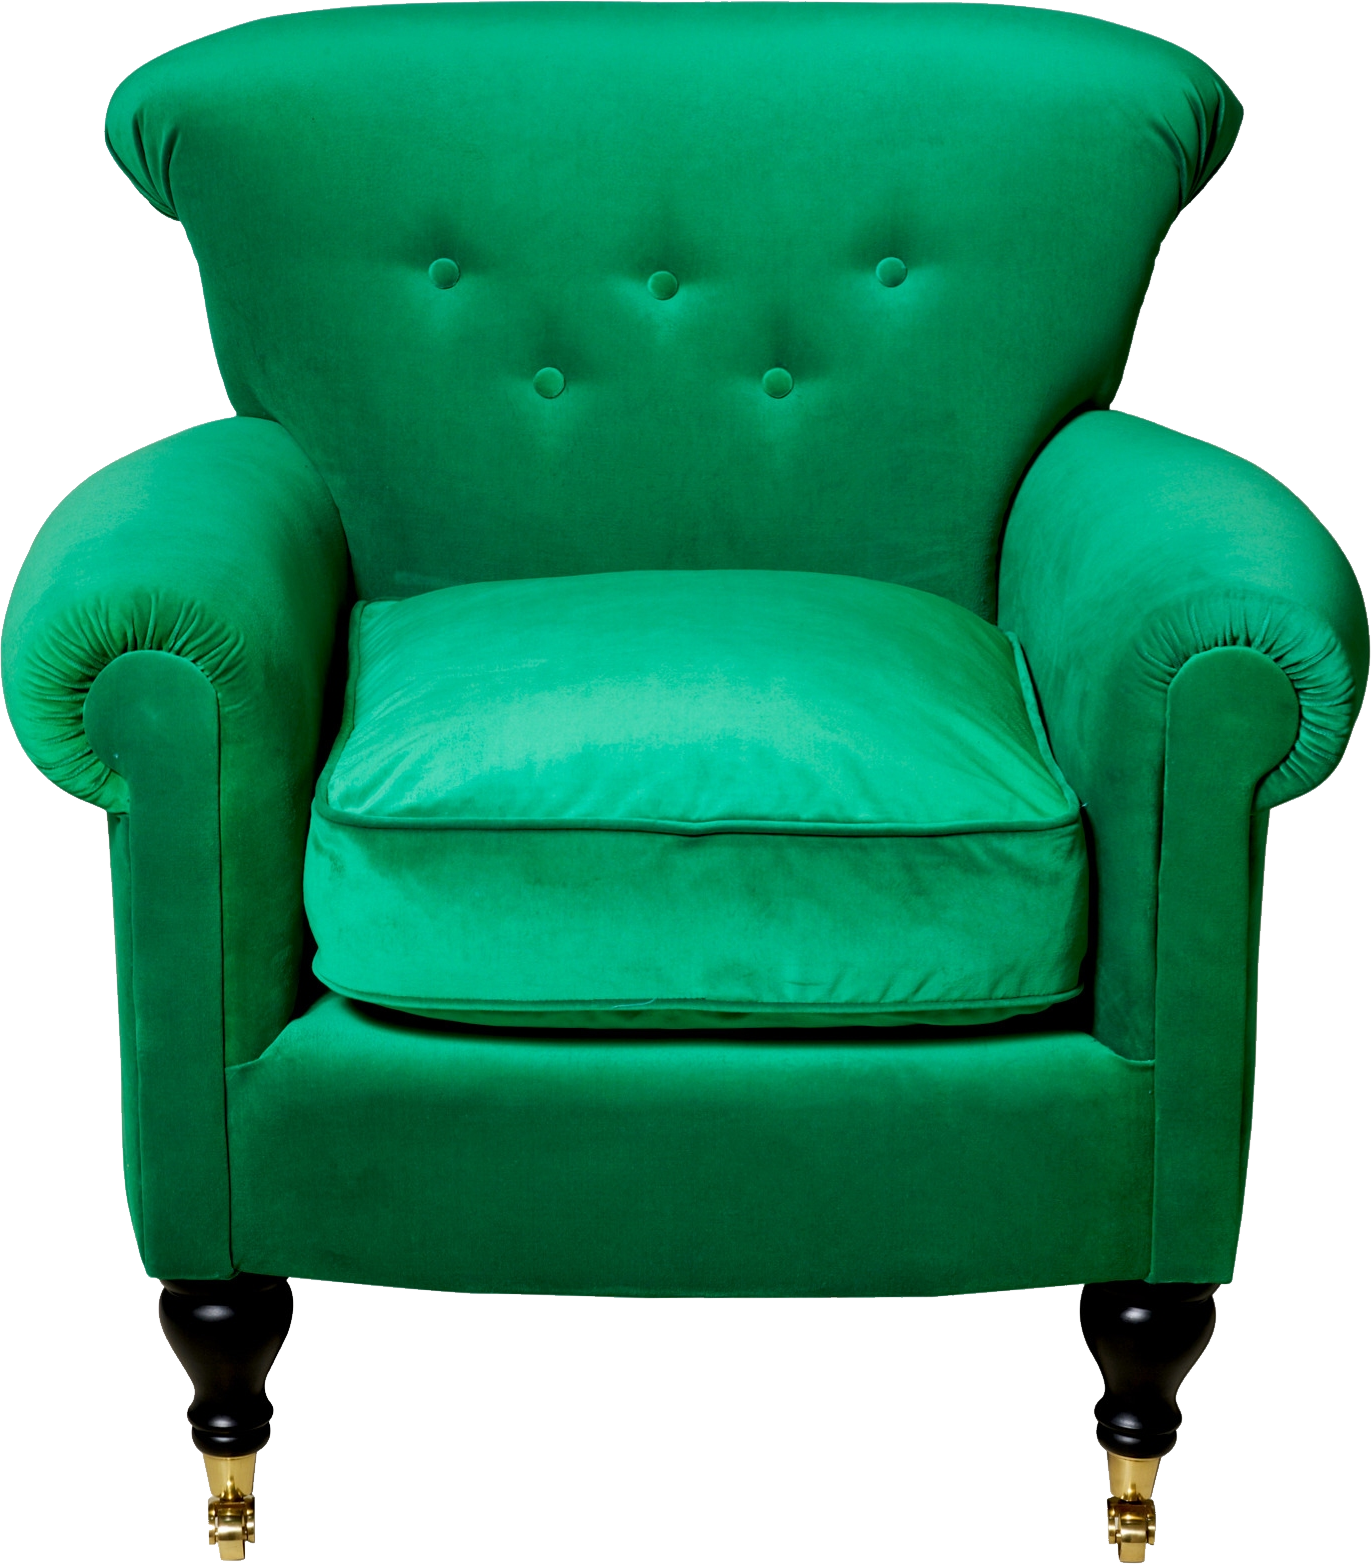 Green armchair PNG image